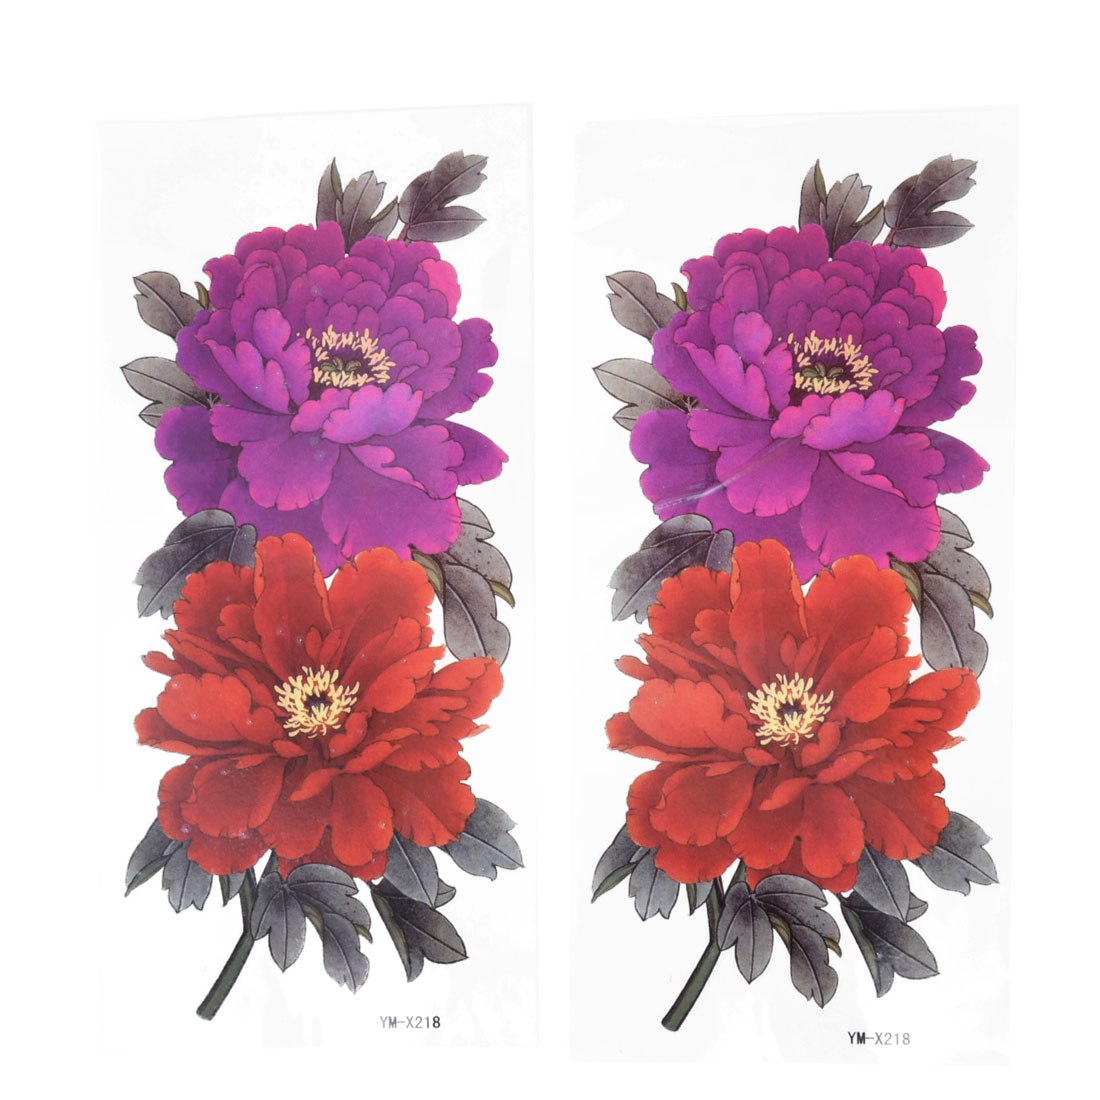 Skin Decor Fuchsia Orange Peony Flower Pattern Temporary Tattoo Transfer Sticker 2 Pcs